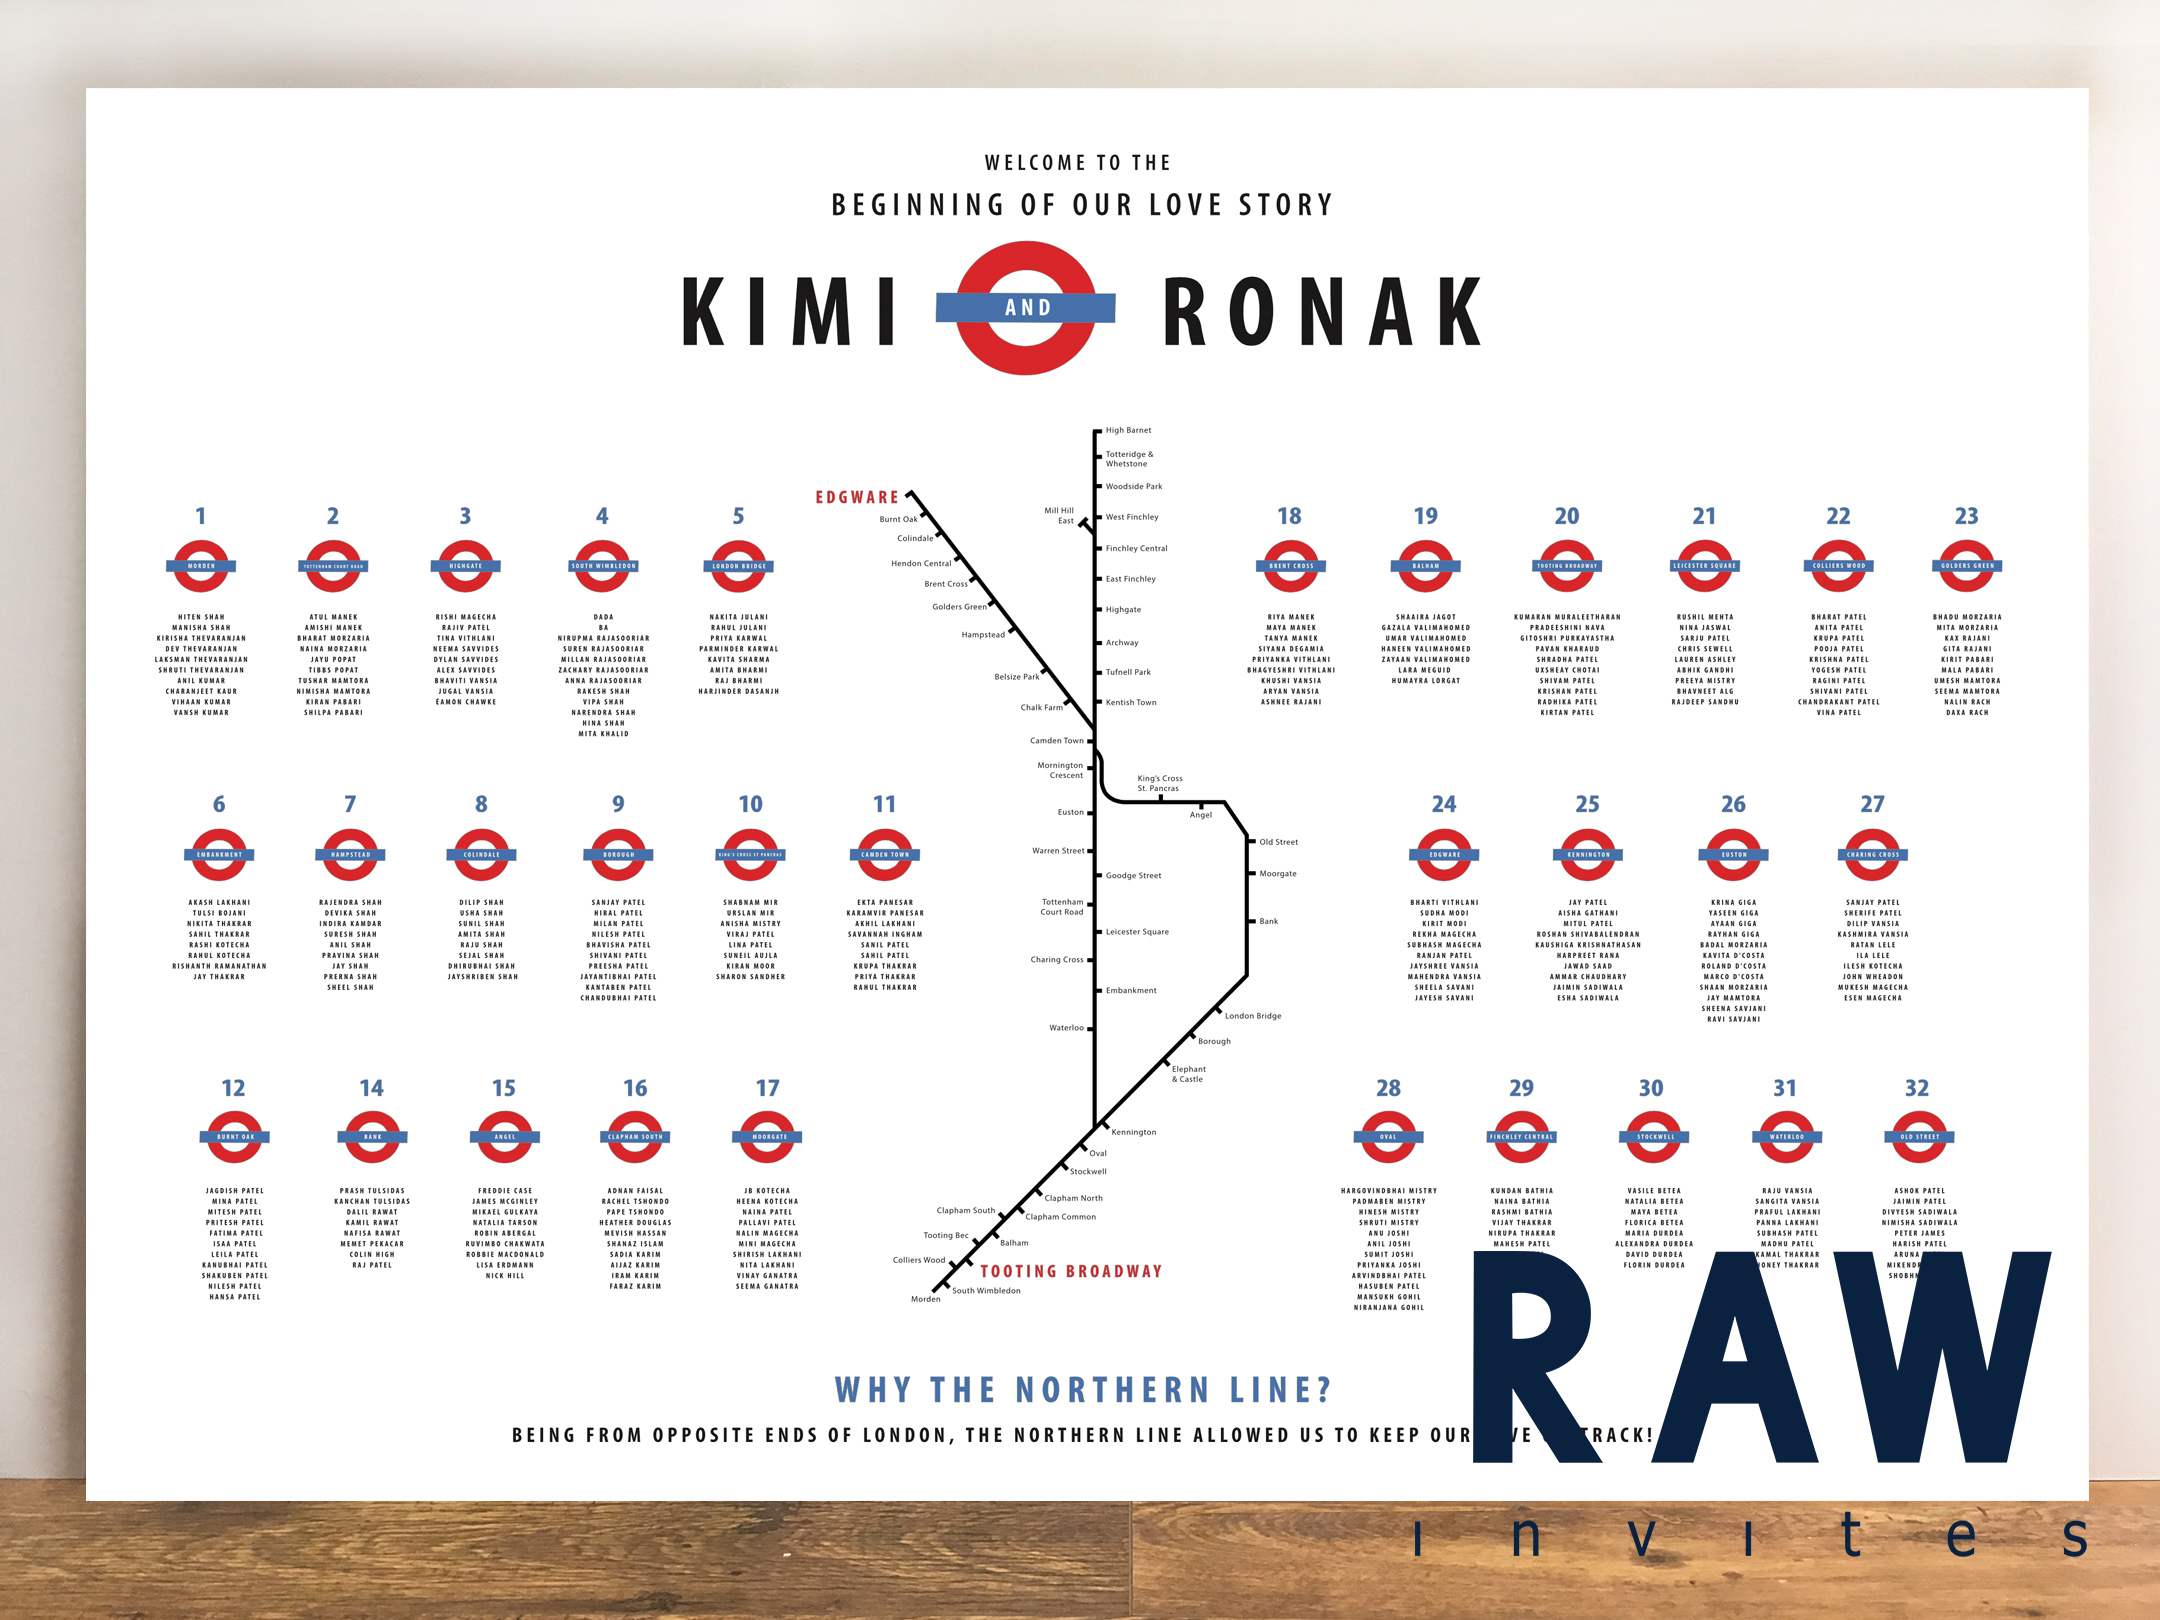 Kimi & Ronak (Lived on opposite ends of the Northern Line)